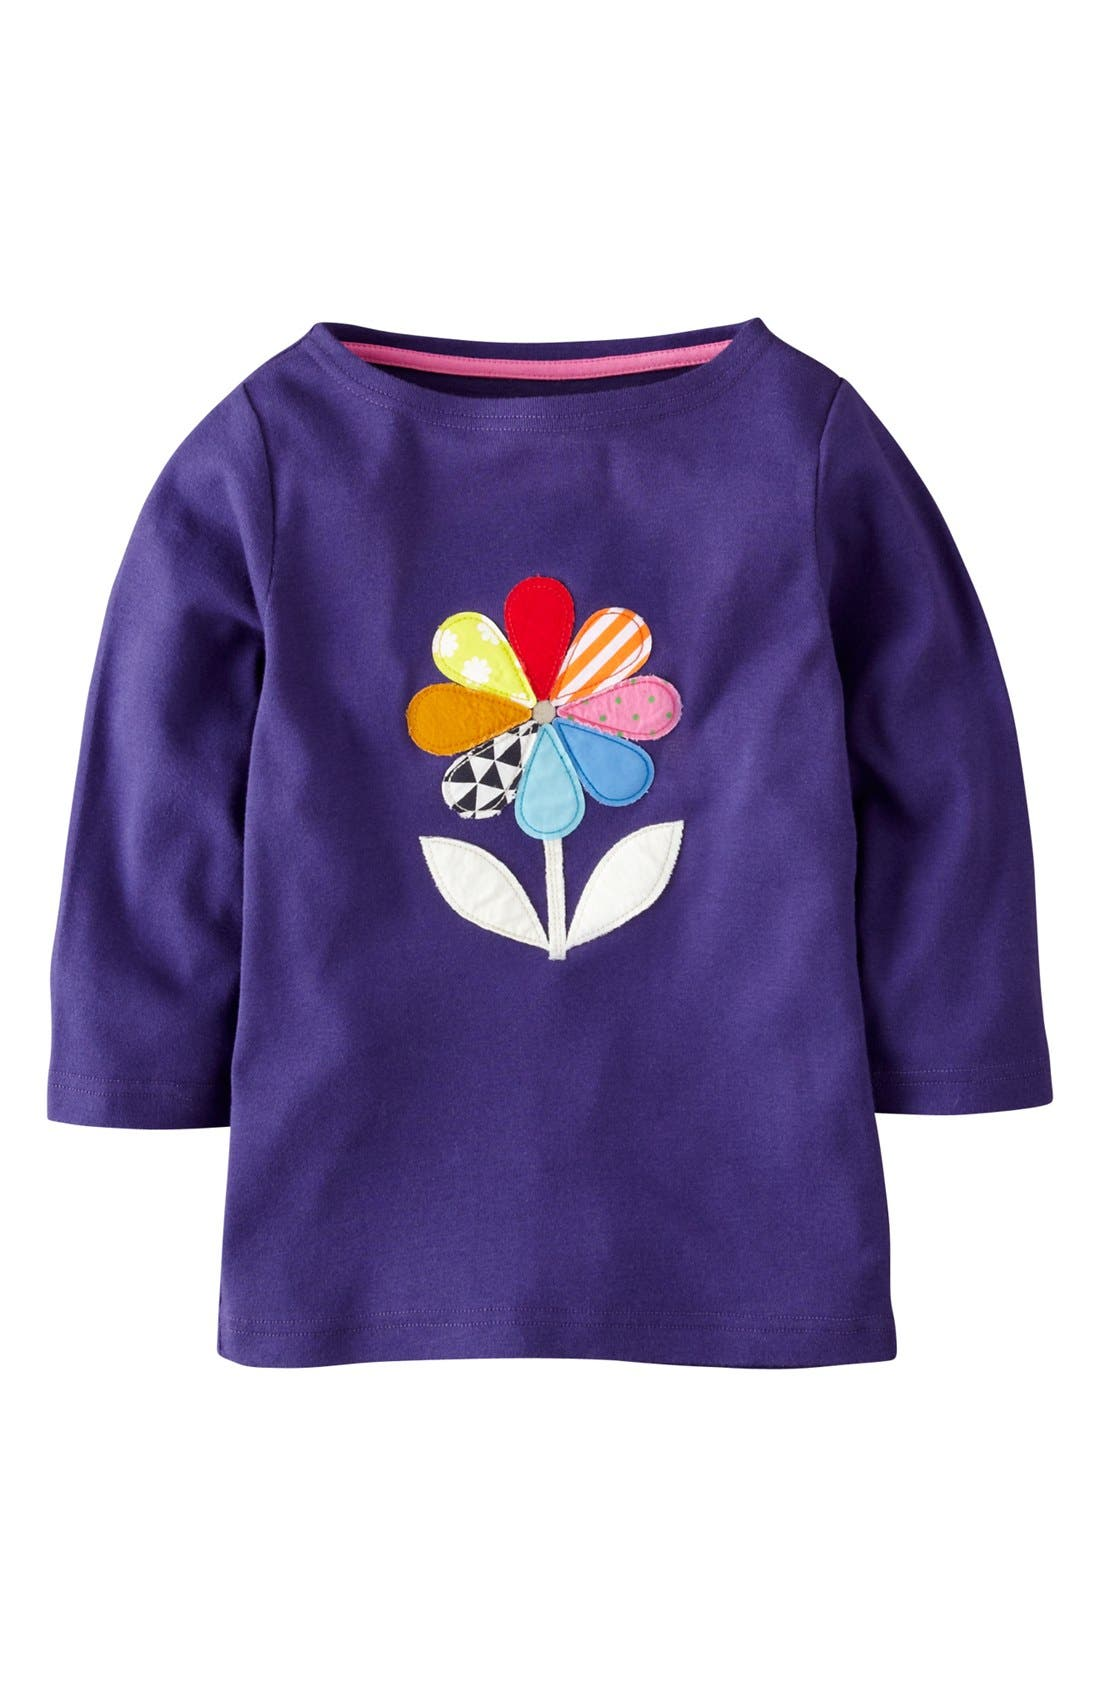 Alternate Image 1 Selected - Mini Boden 'Kaleidoscope Appliqué' Tee (Toddler Girls)